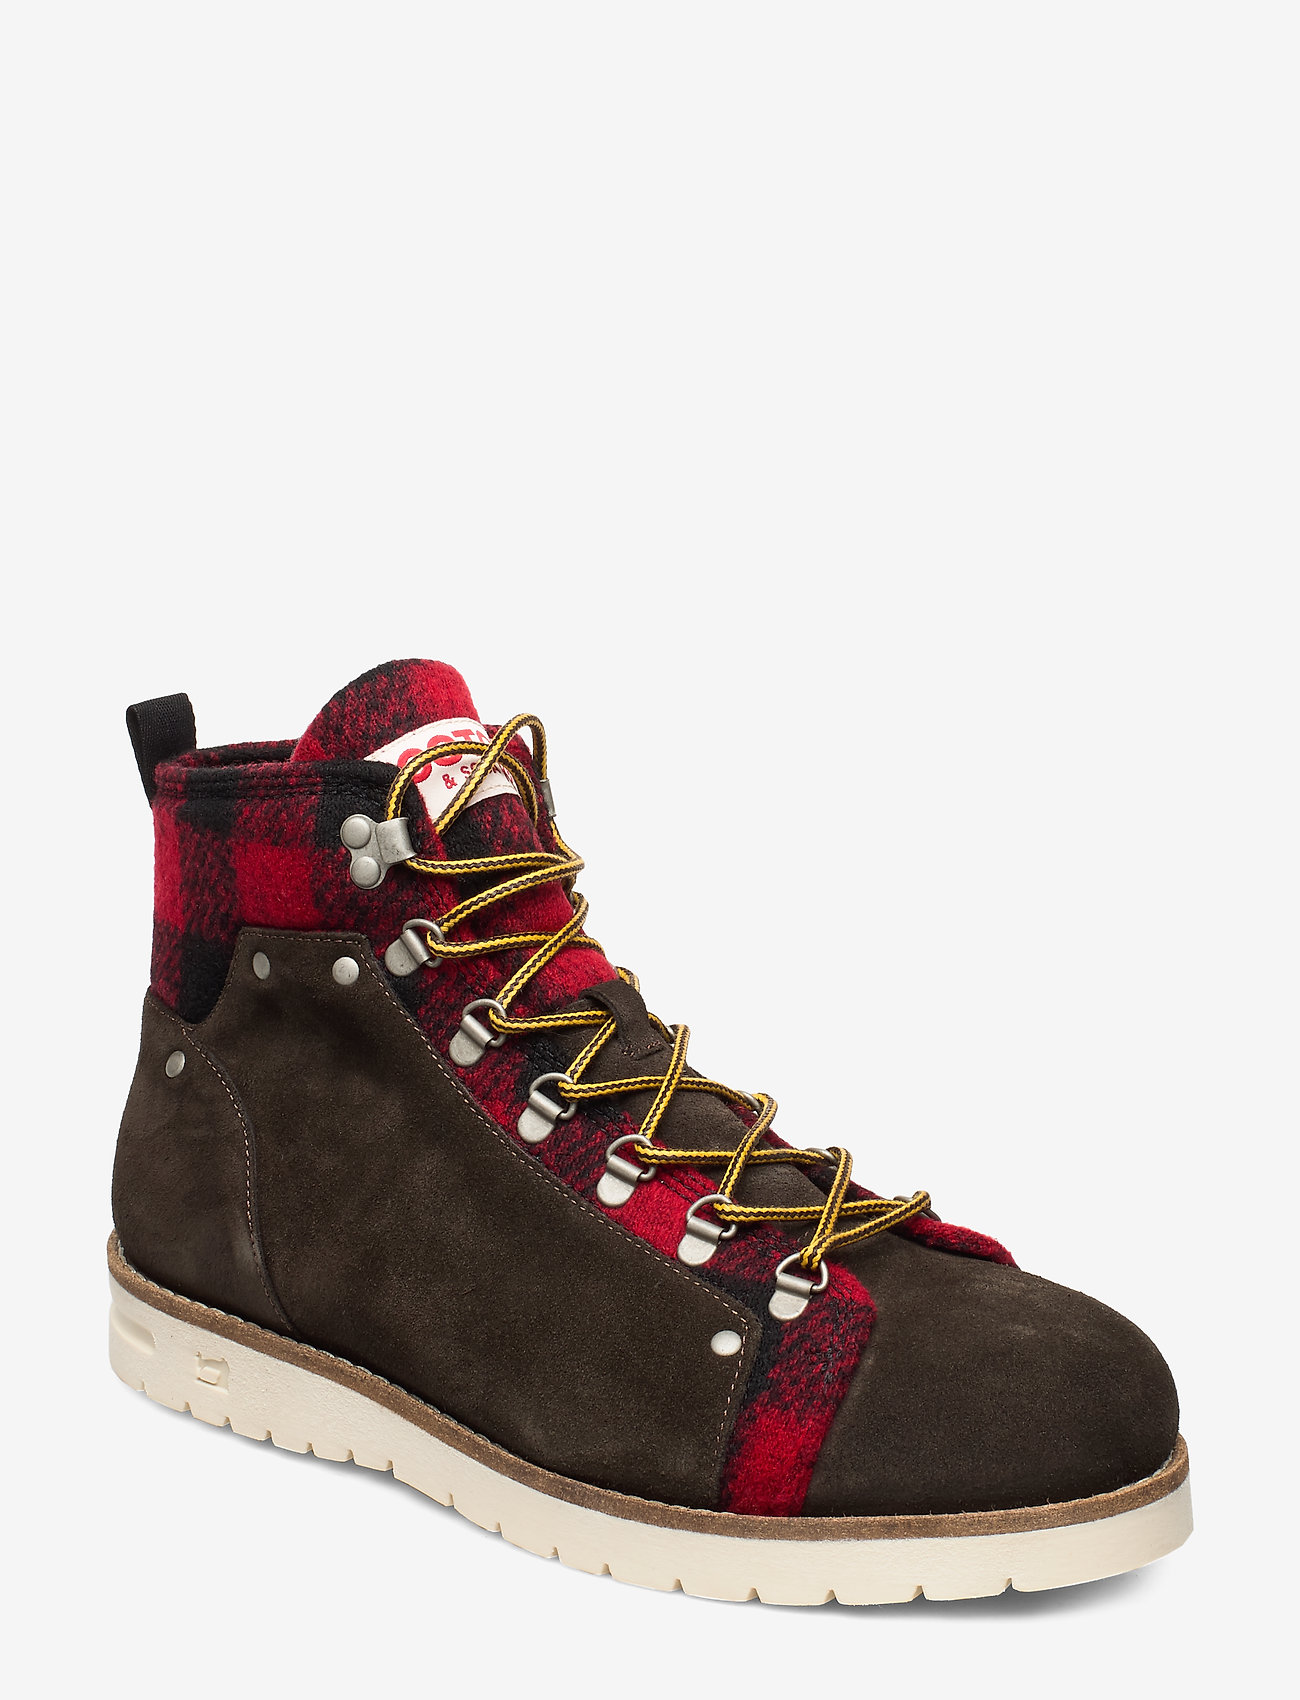 Scotch & Soda Shoes - Borrel Mid laceboot - veter schoenen - dk brown+blk/red - 0